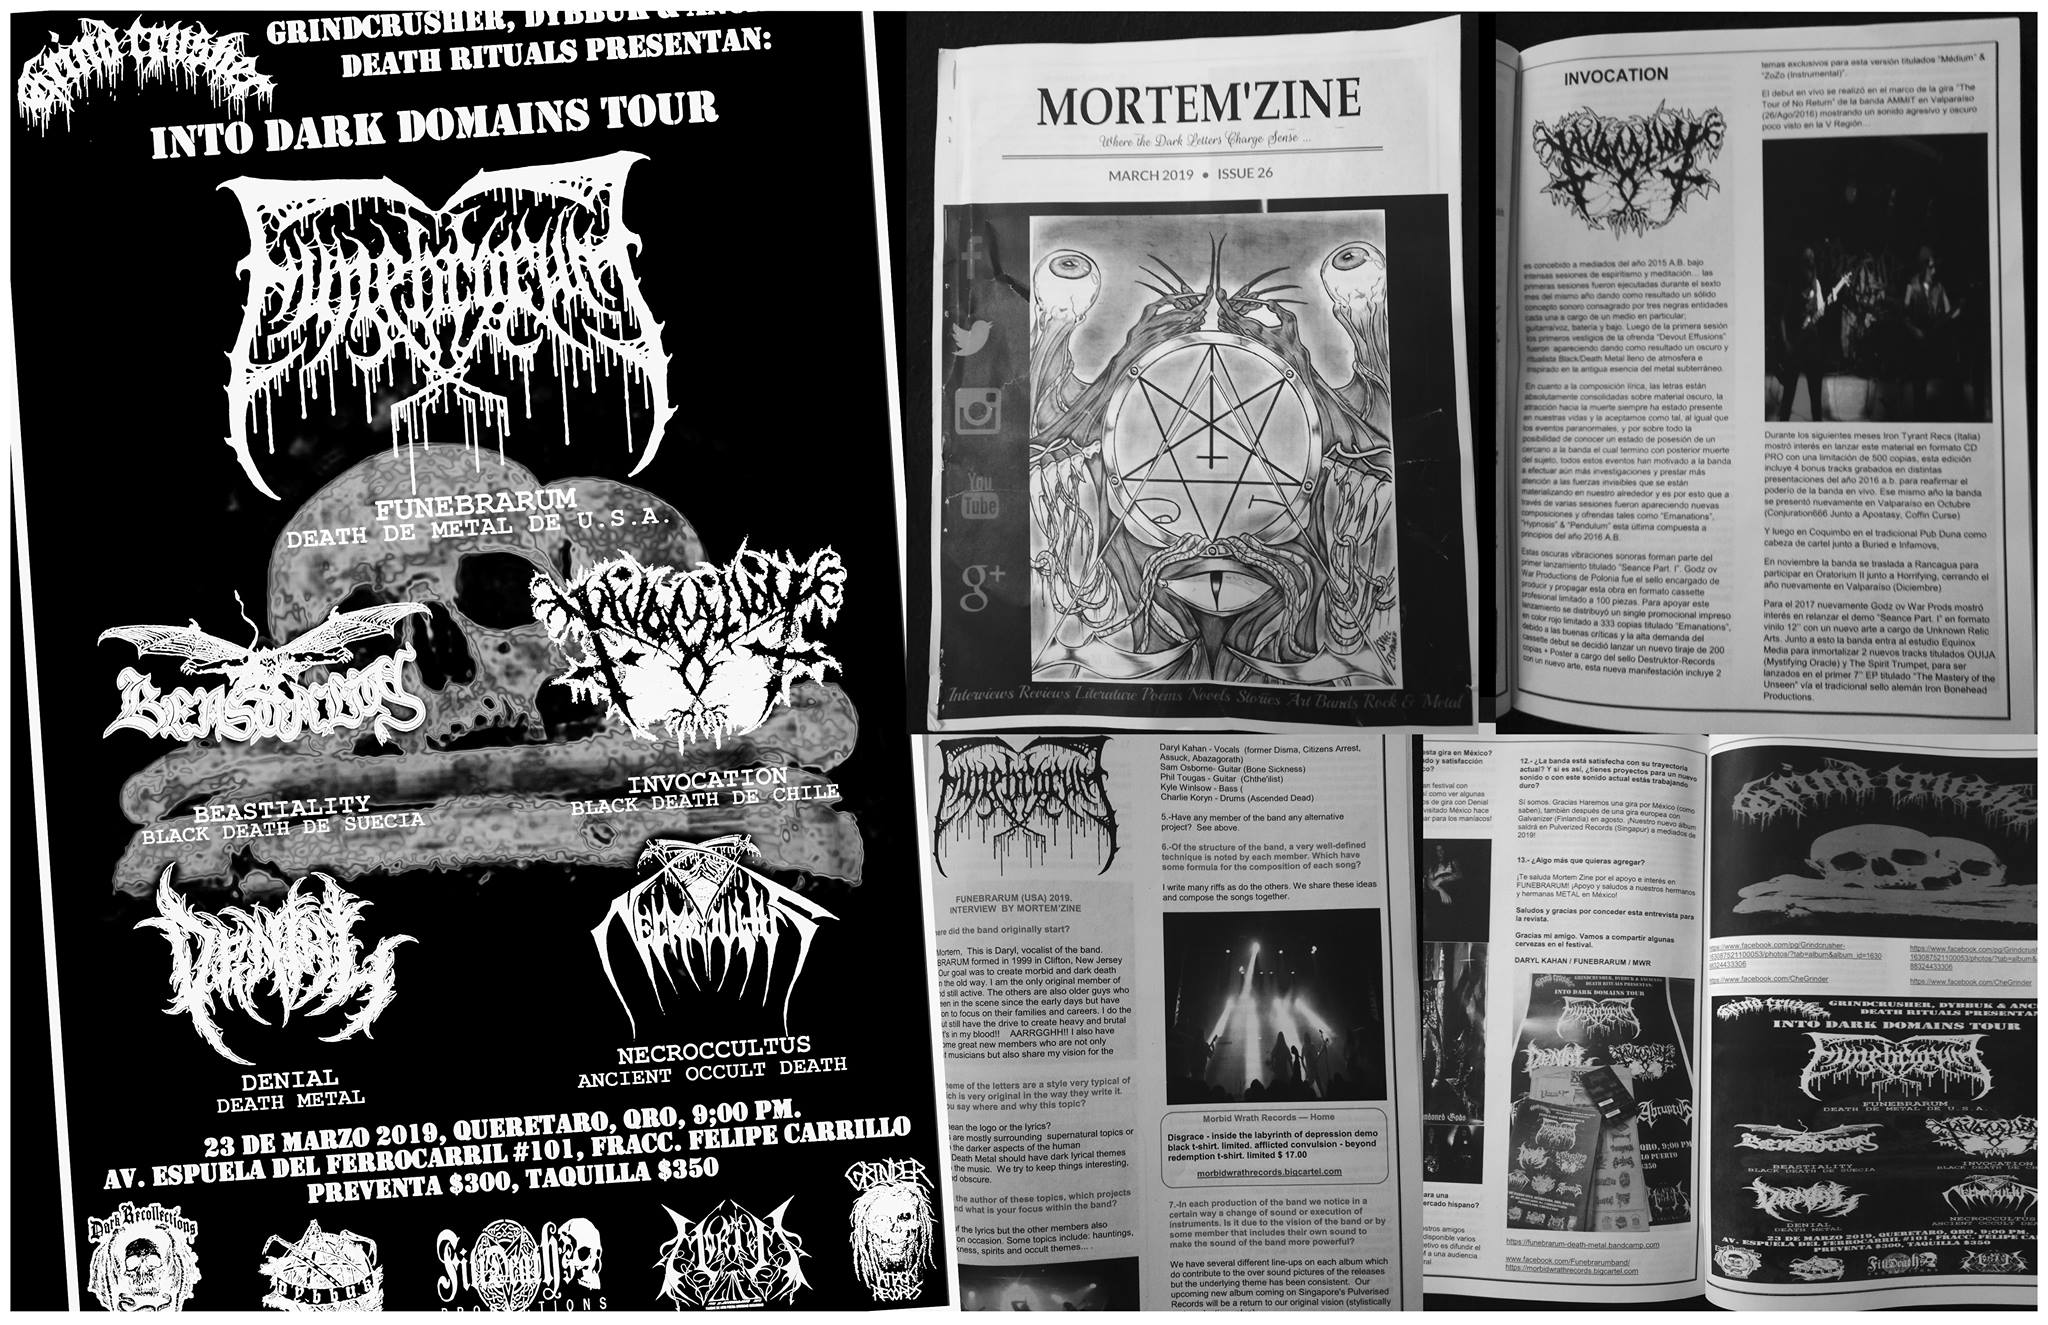 Funebrarum Mexico tour ad